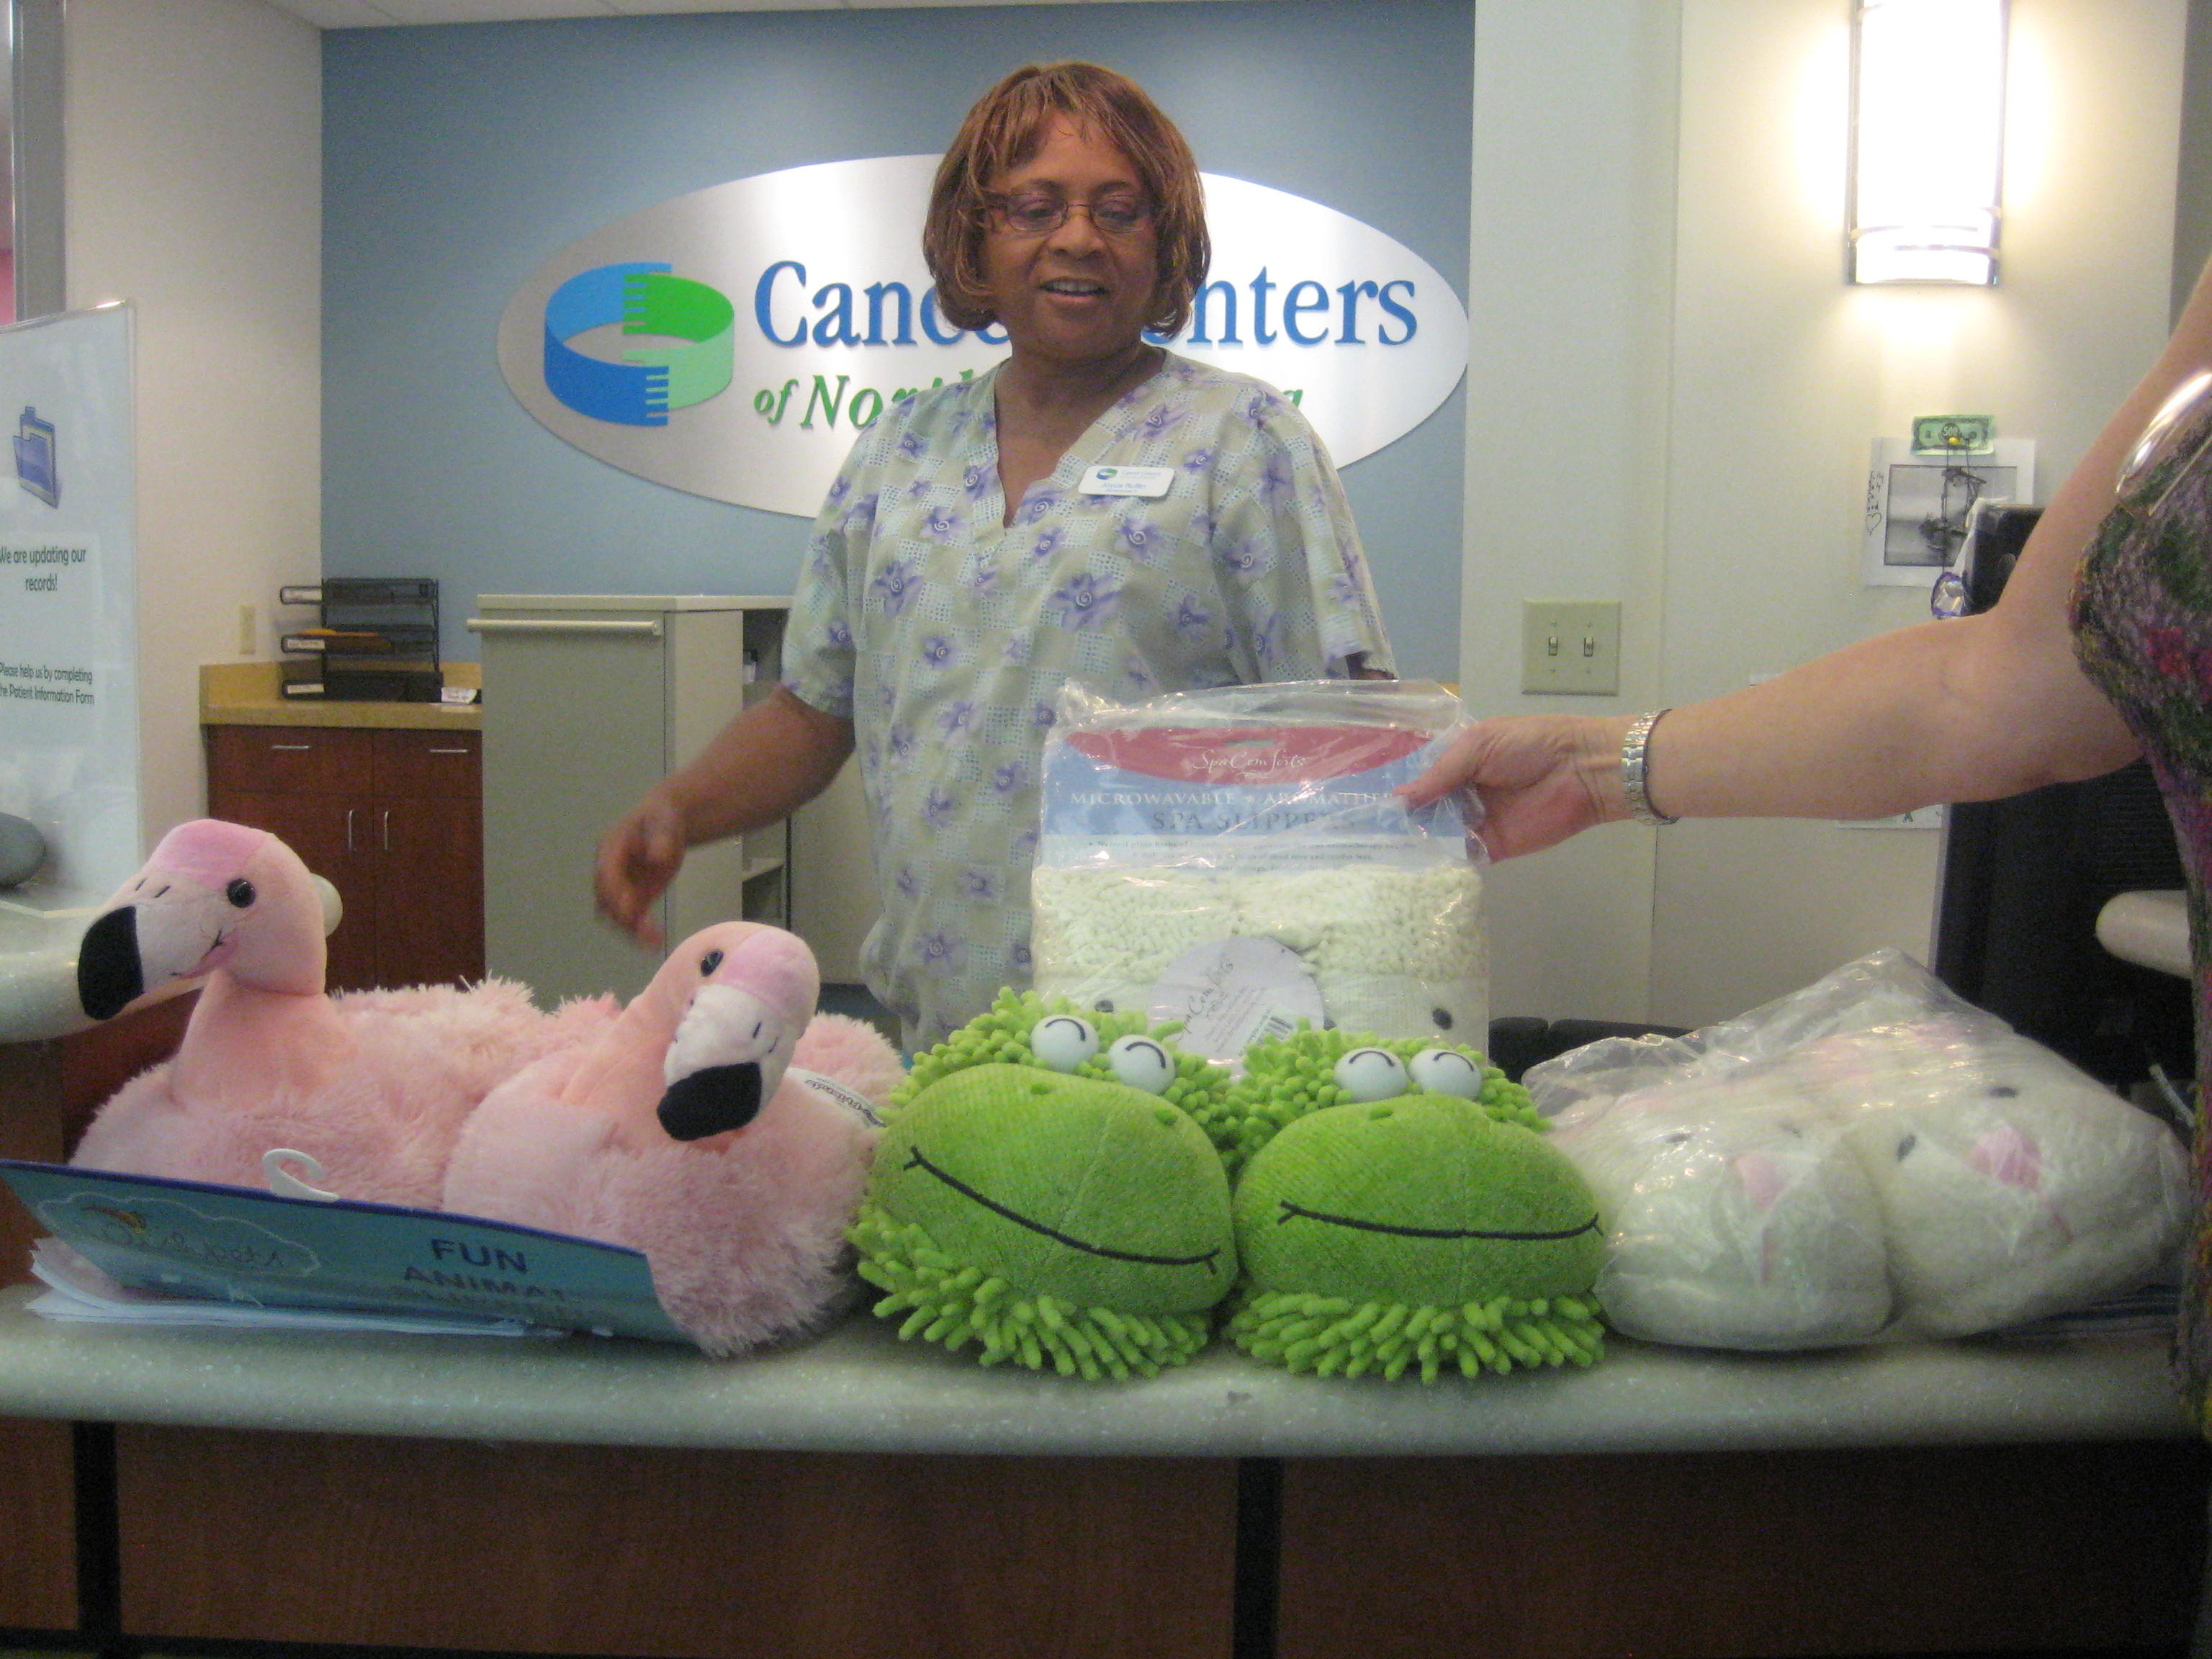 A staff member at the Cancer Centers of North Carolina opens slippers to give to patients.